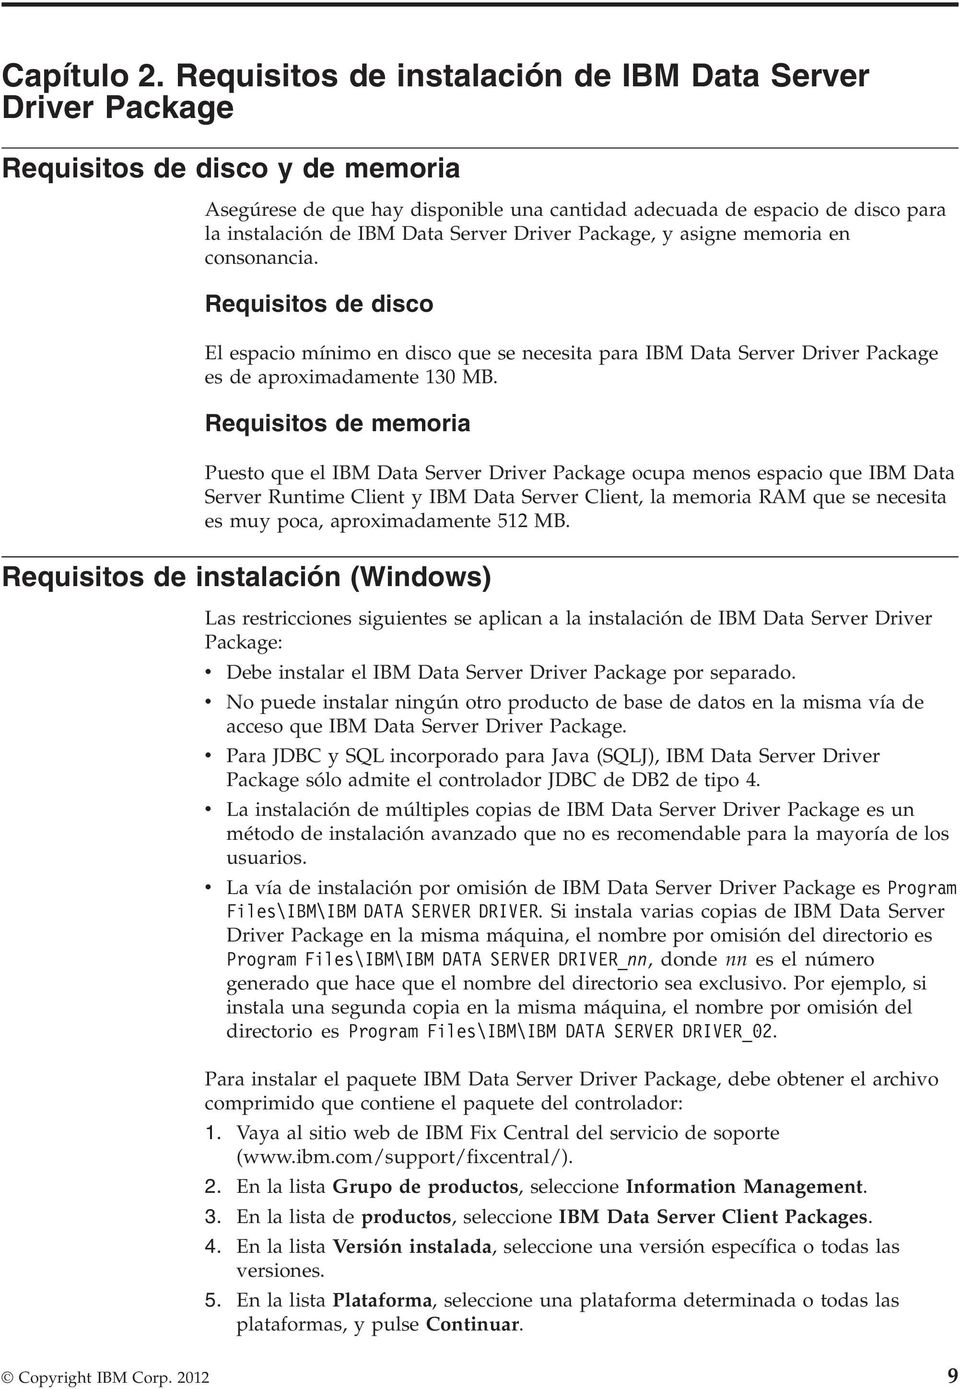 Server Driver Package, y asigne memoria en consonancia. Requisitos de disco El espacio mínimo en disco que se necesita para IBM Data Server Driver Package es de aproximadamente 130 MB.